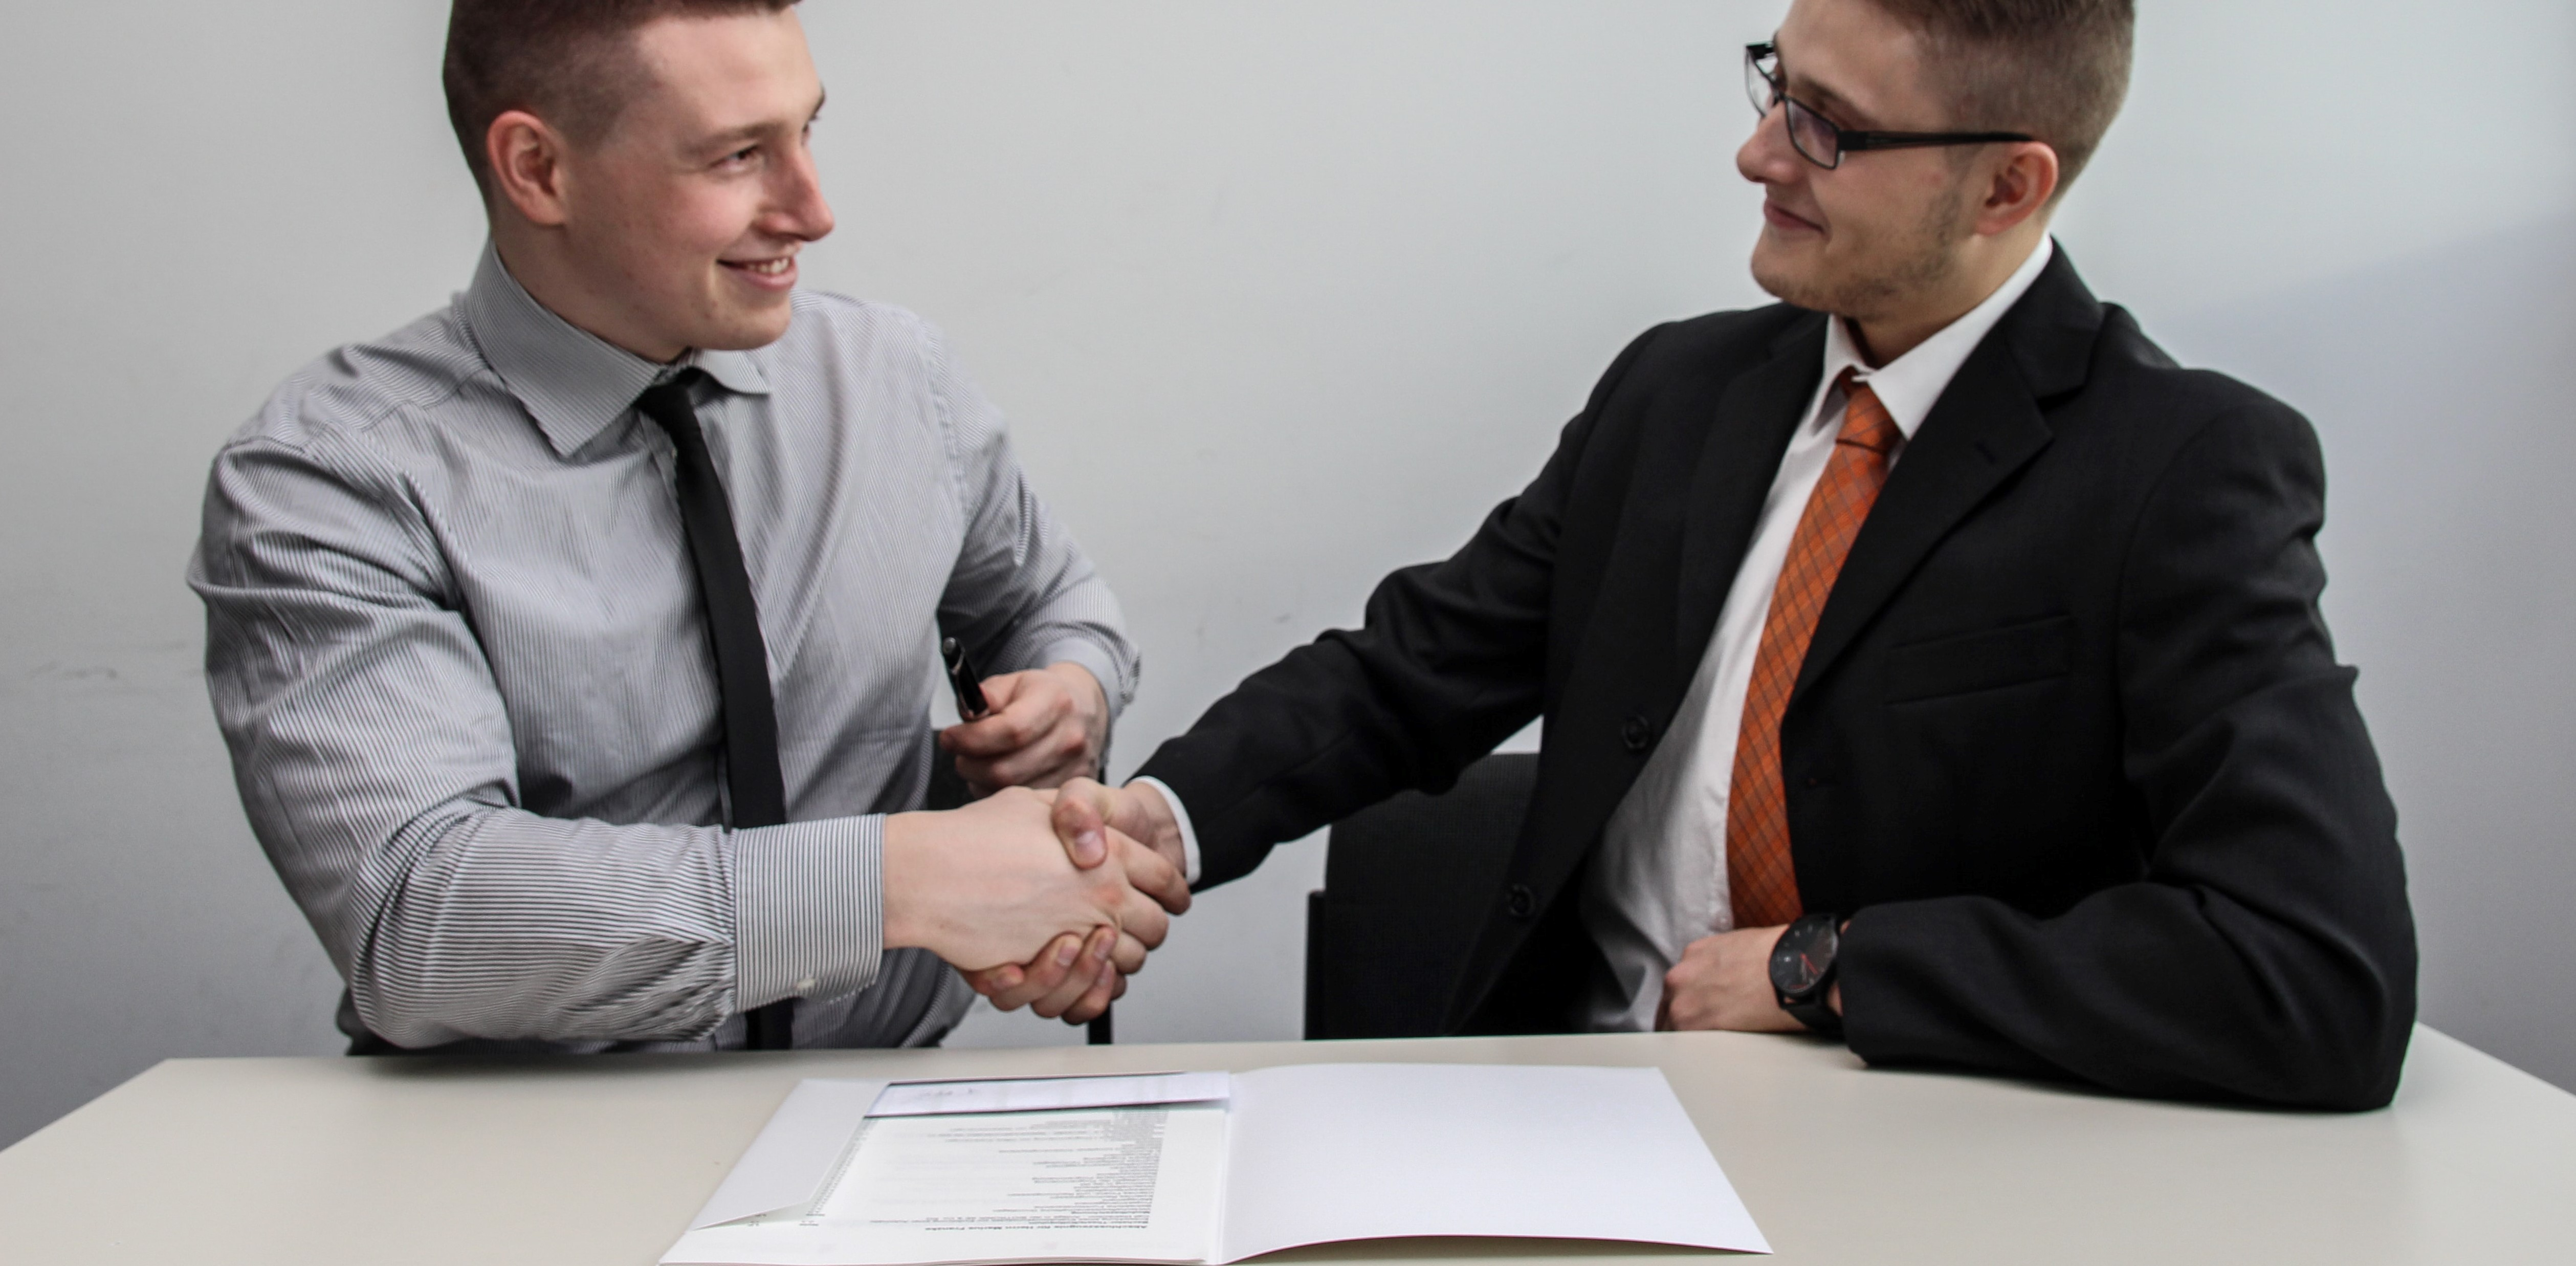 How to improve your employability?